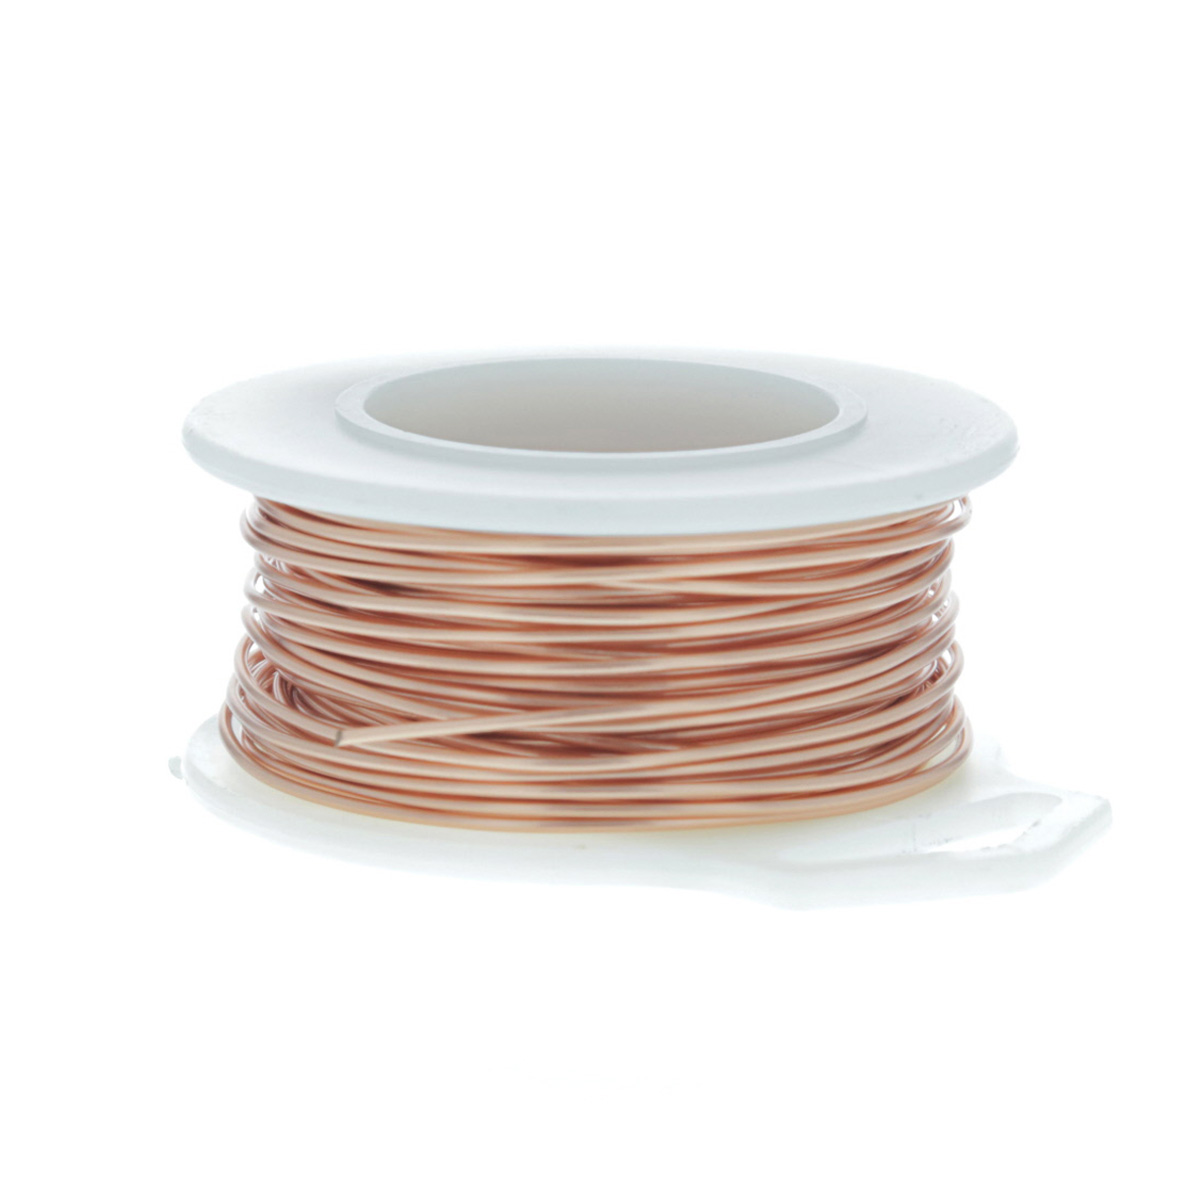 14 gauge round natural enameled craft wire 10 ft wire for 10 gauge craft wire